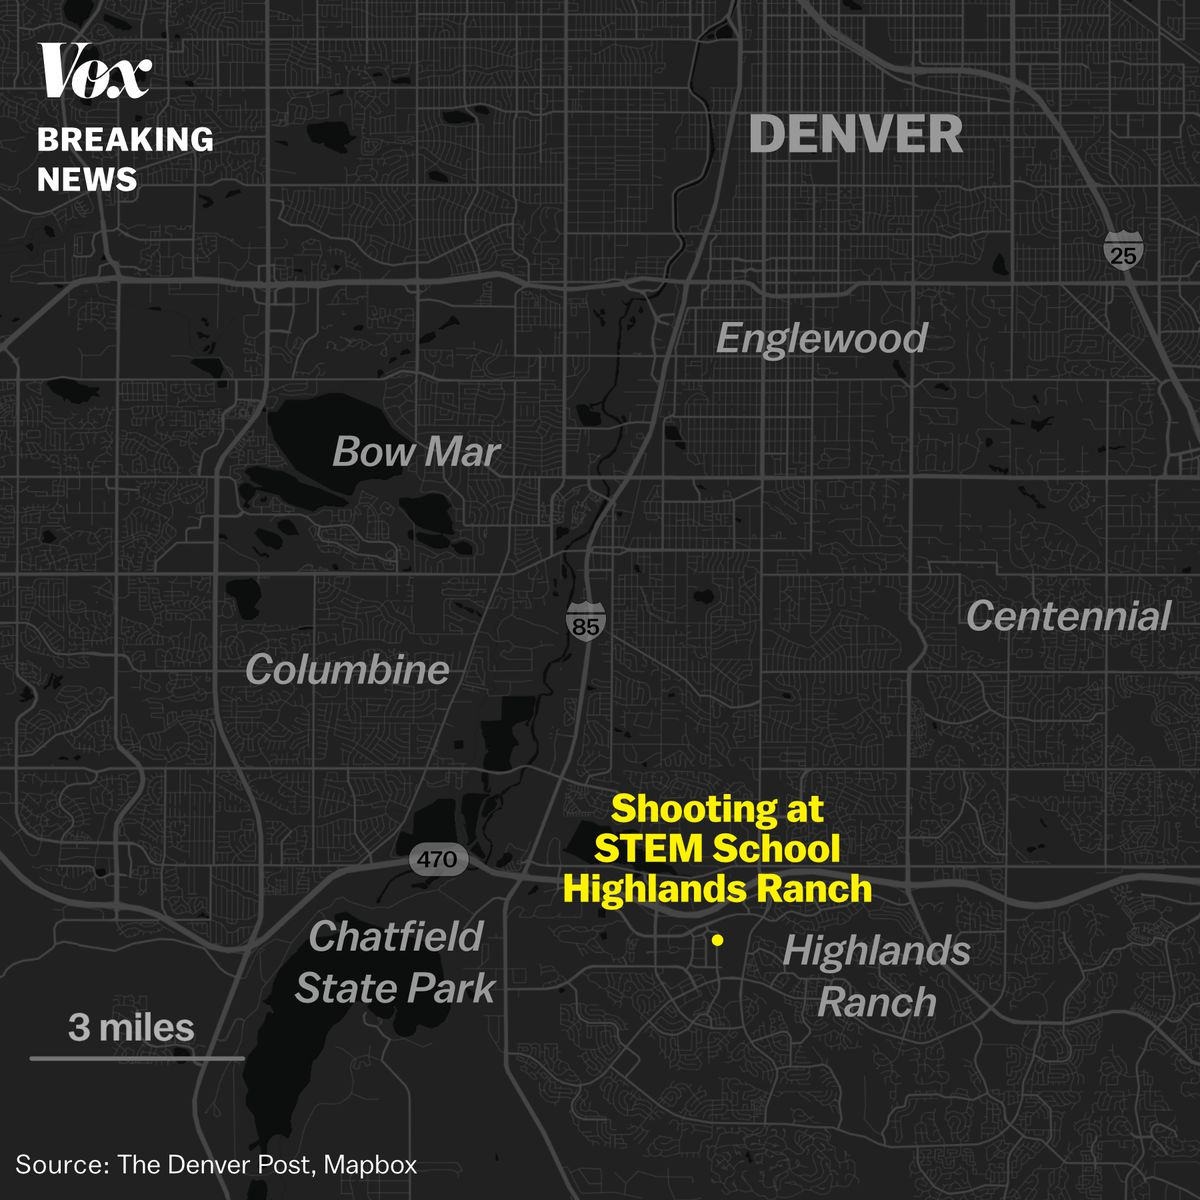 Colorado Shooting At STEM School Highlands Ranch: What We